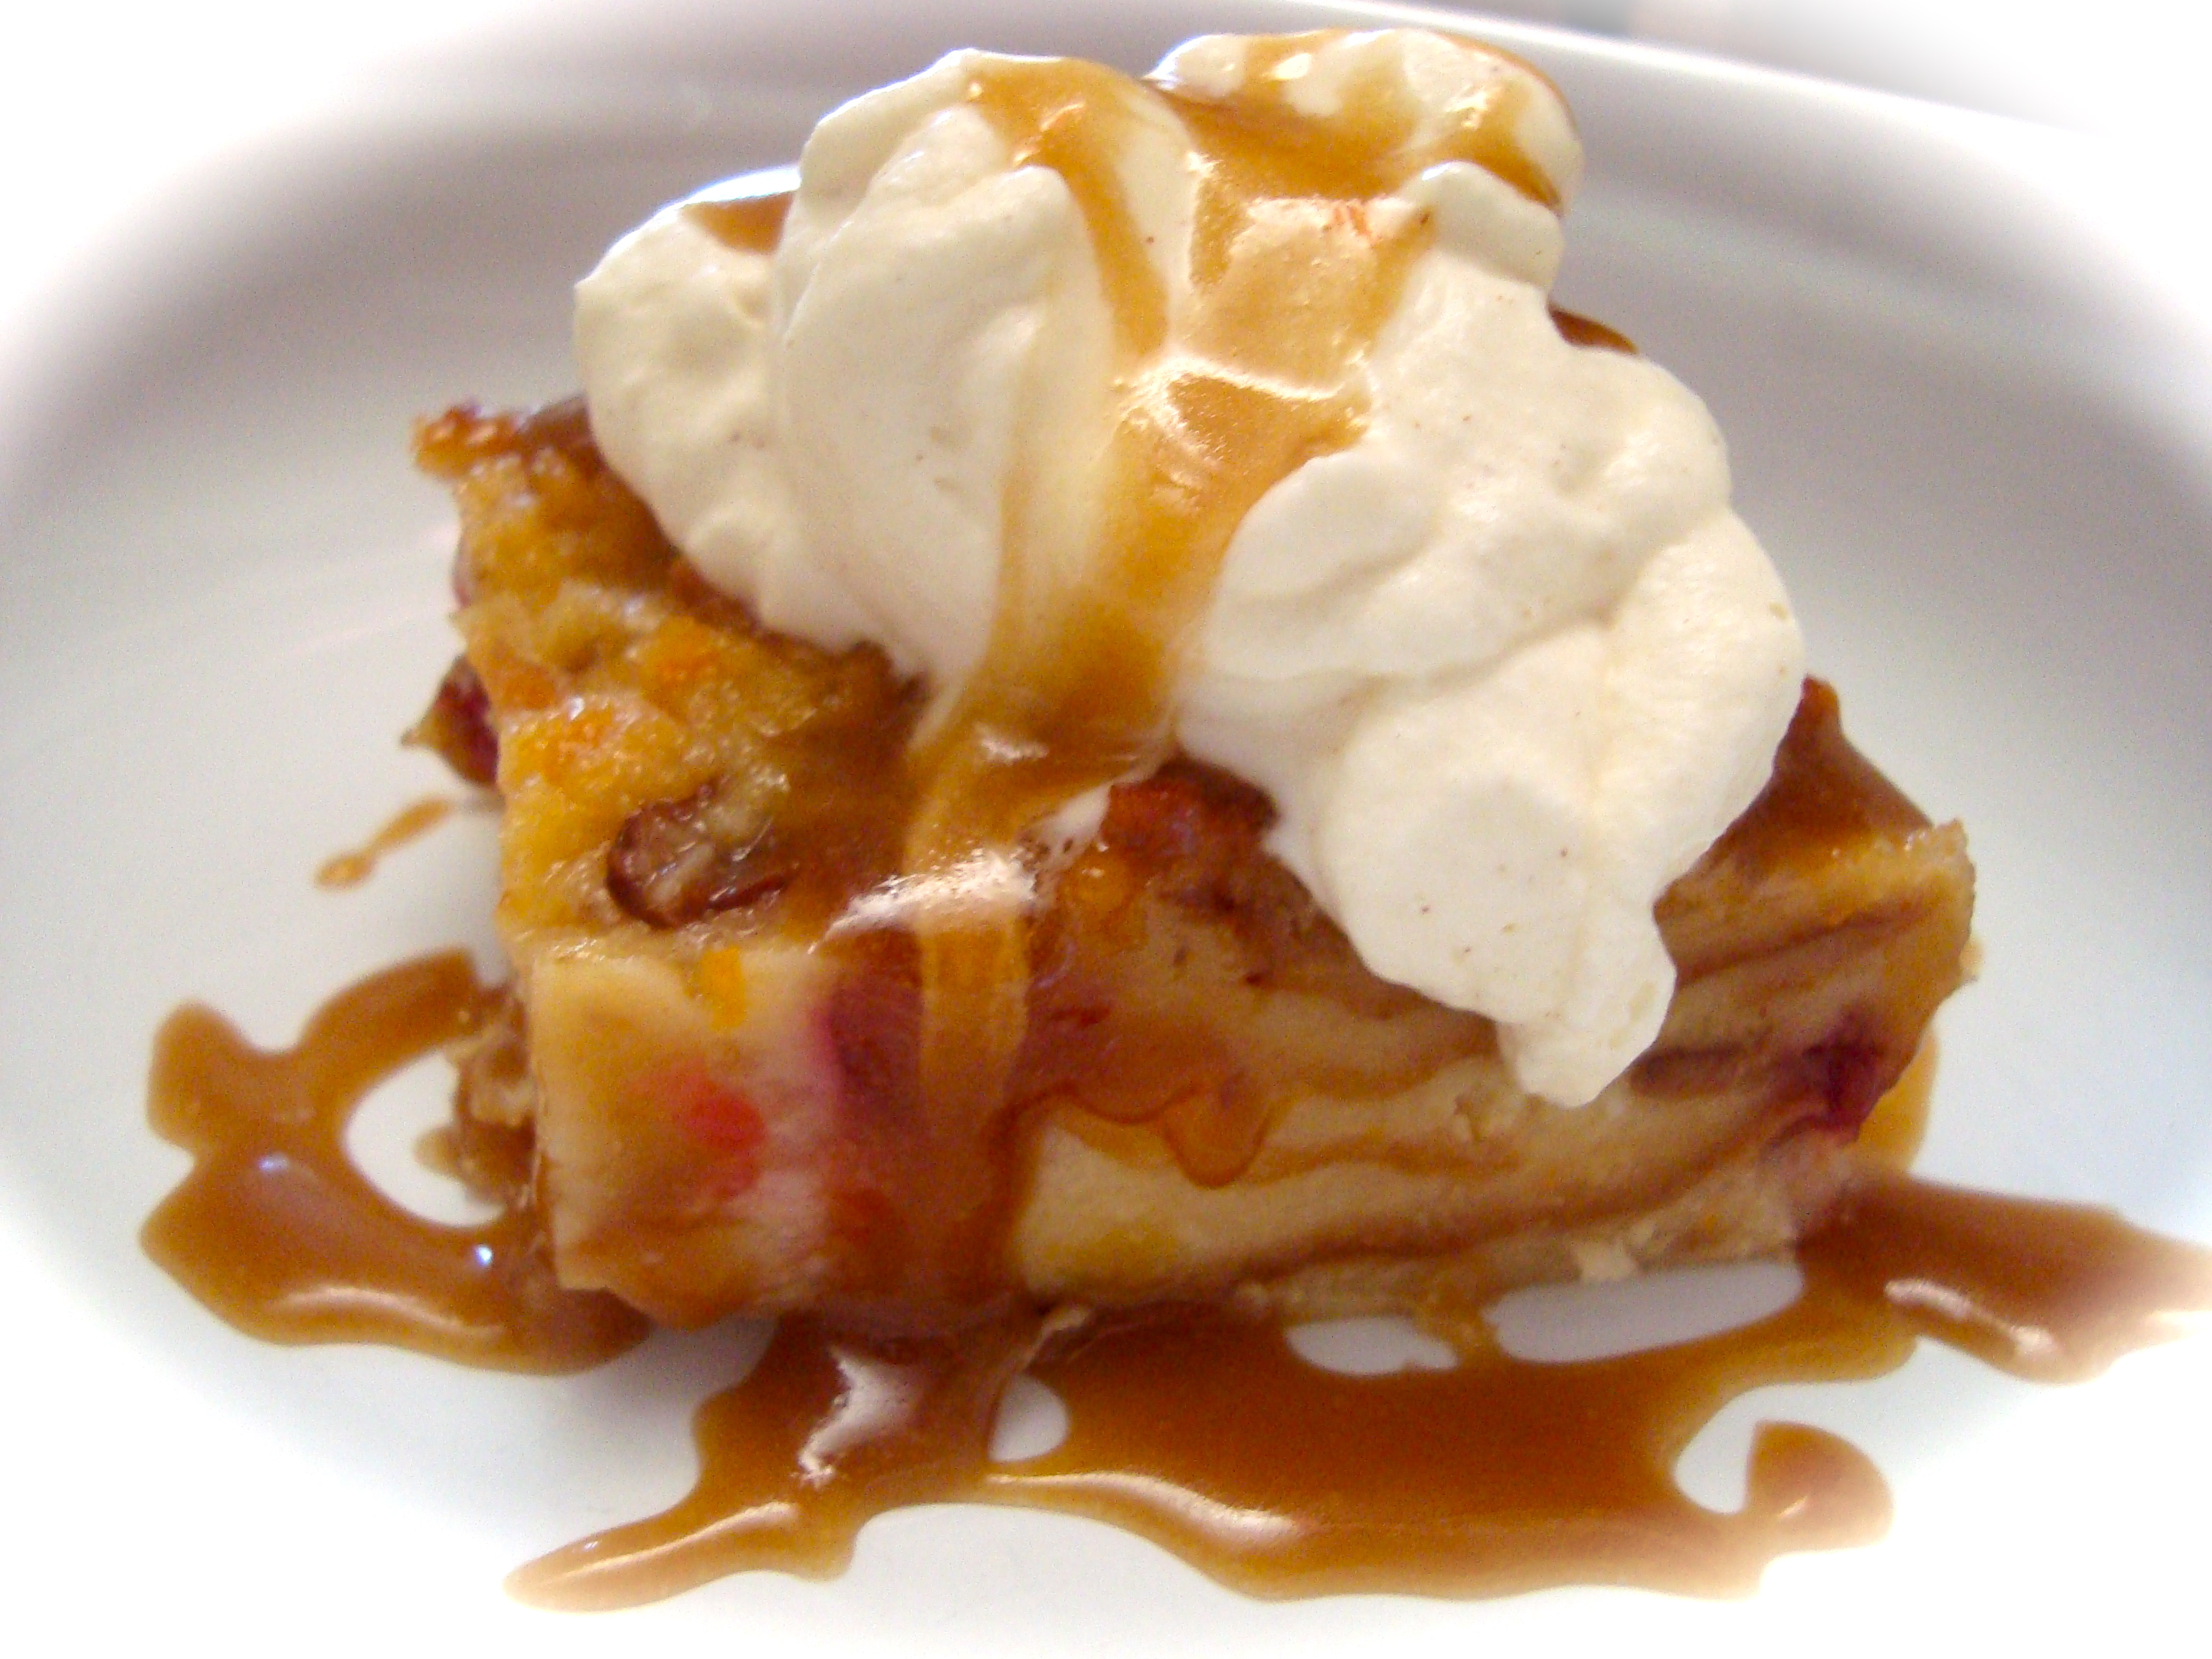 ... bread pudding with Joe's butterscotch and cinnamon whipped cream